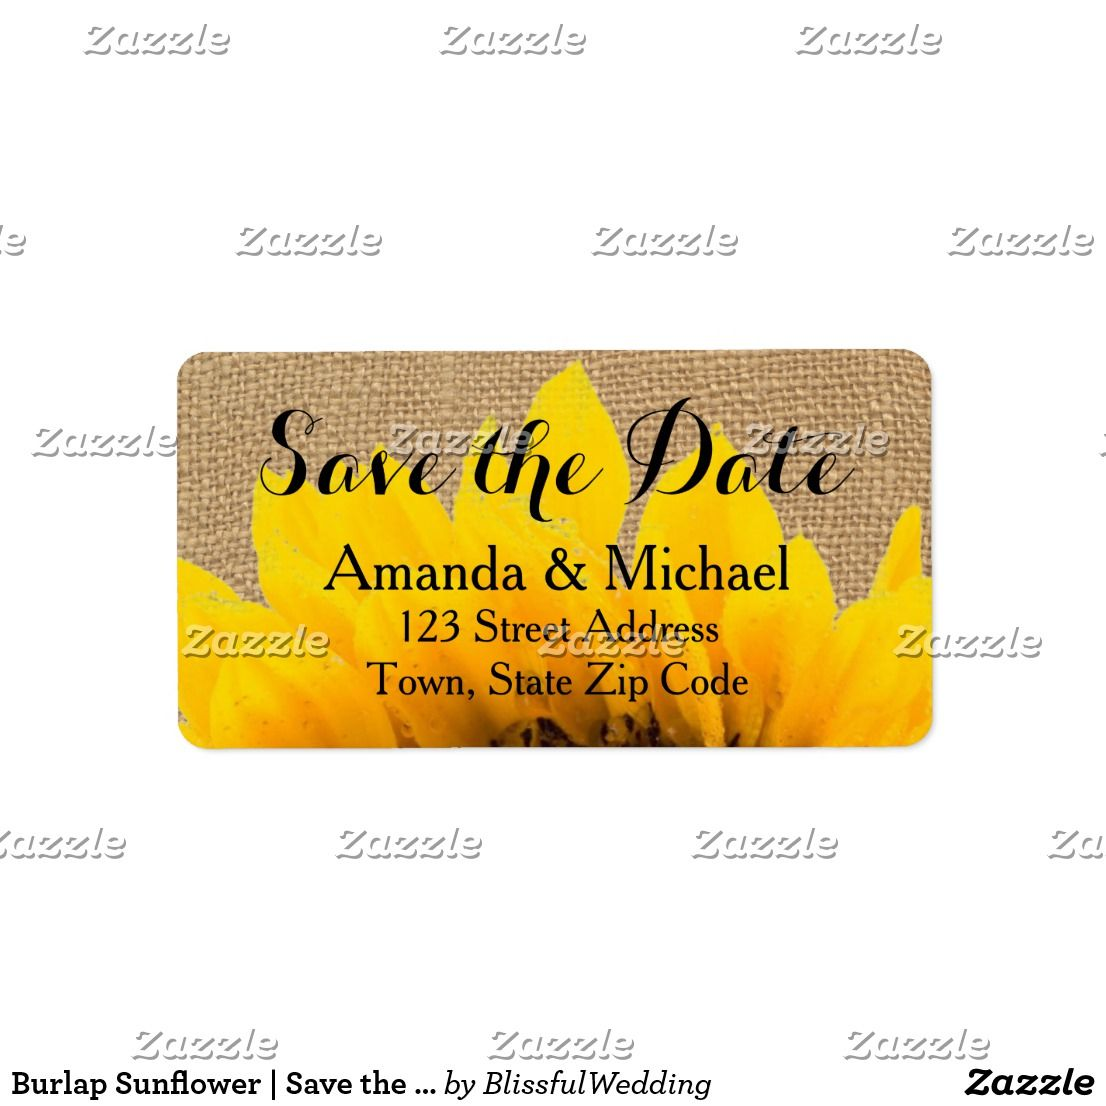 Burlap sunflower save the date address label wedding and